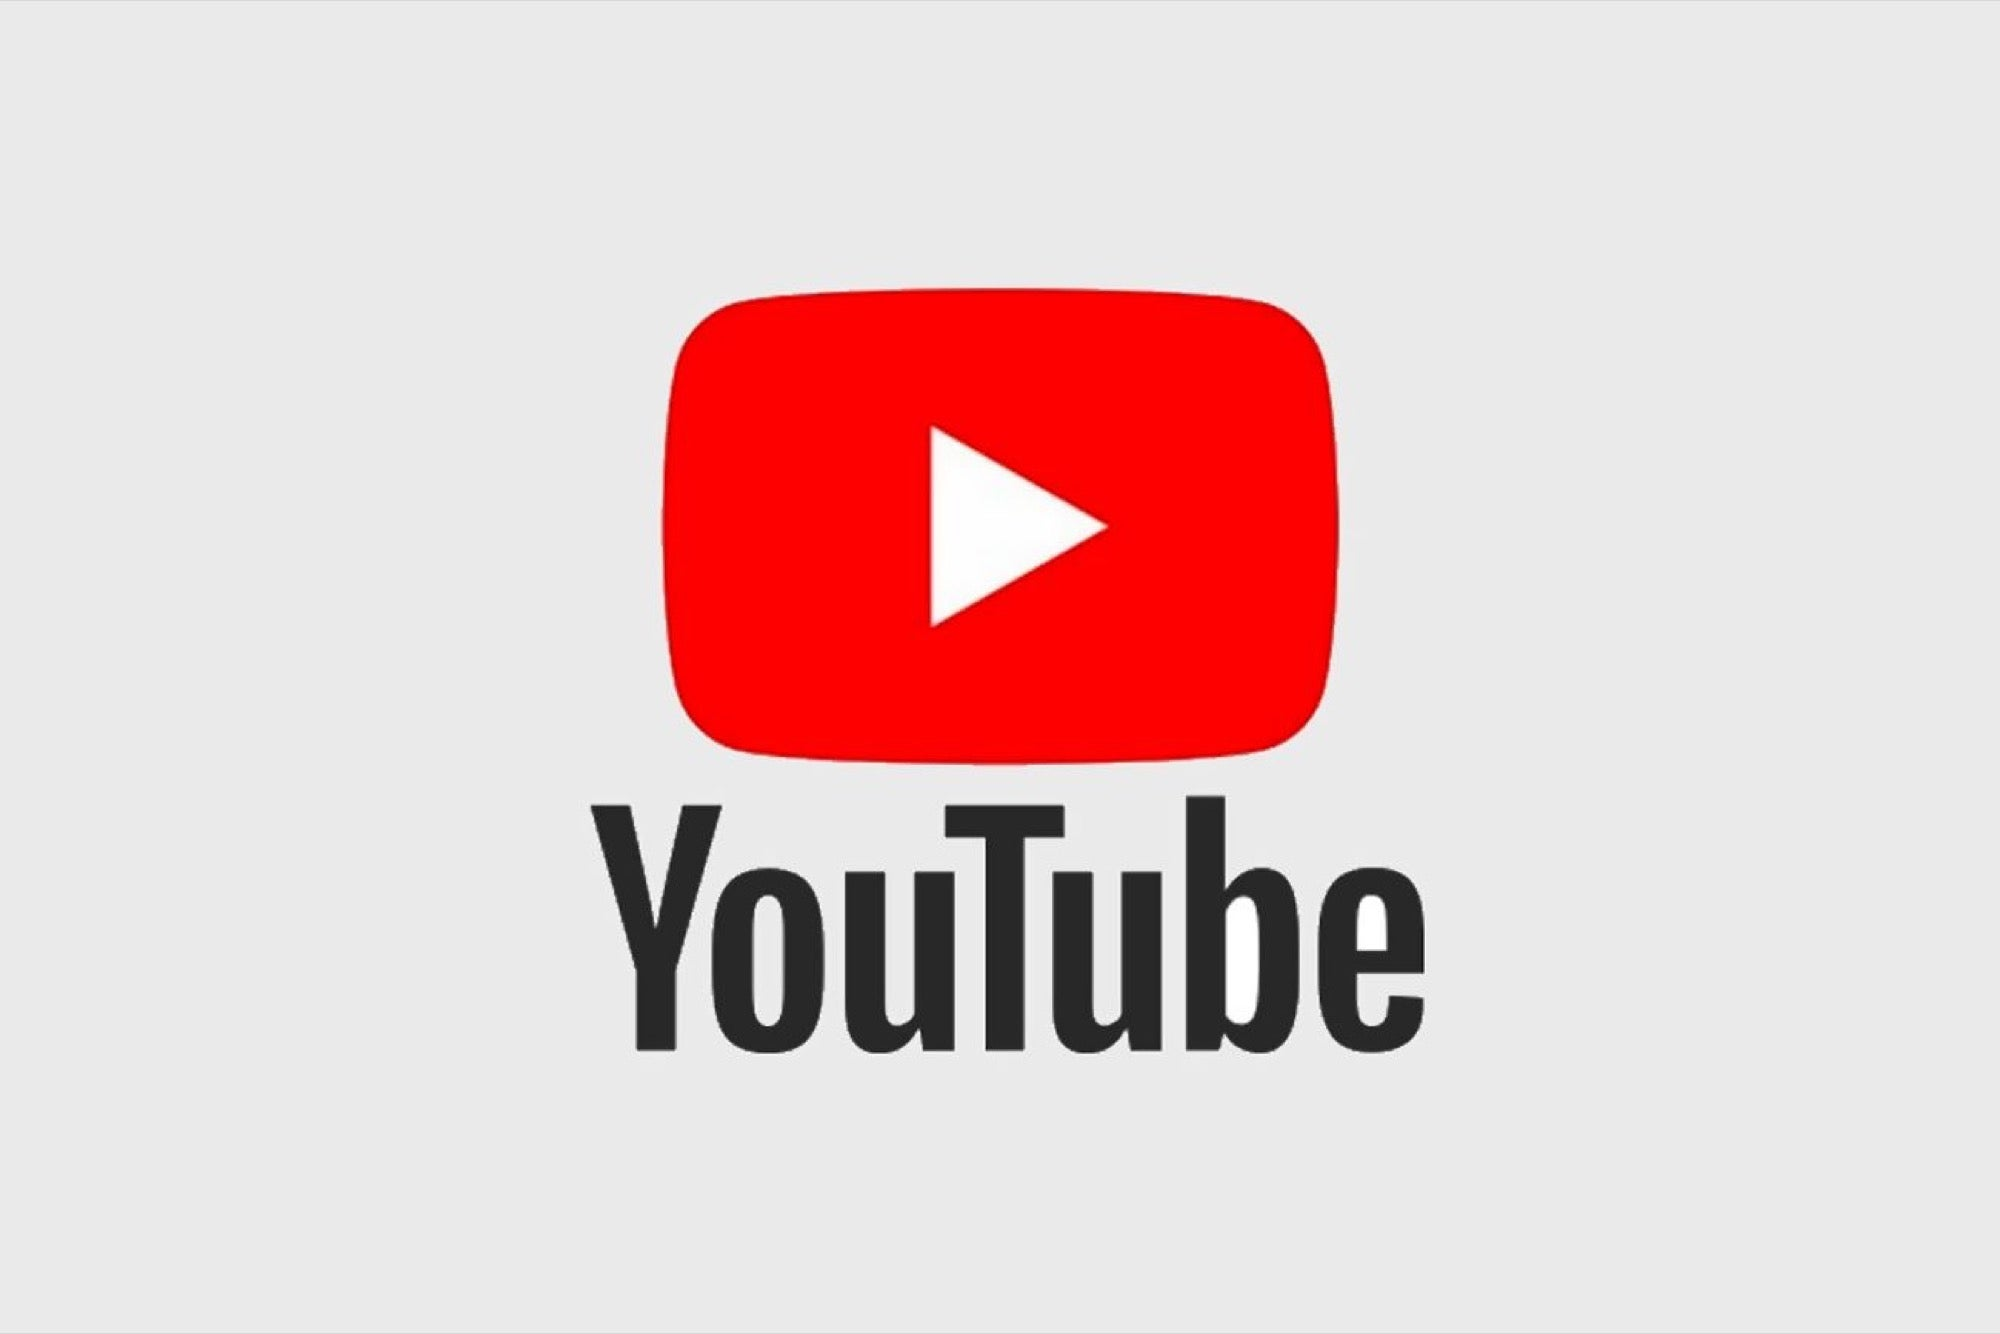 YouTube 15.29.35 Apk Android + Windows + PC Full Version Free Download